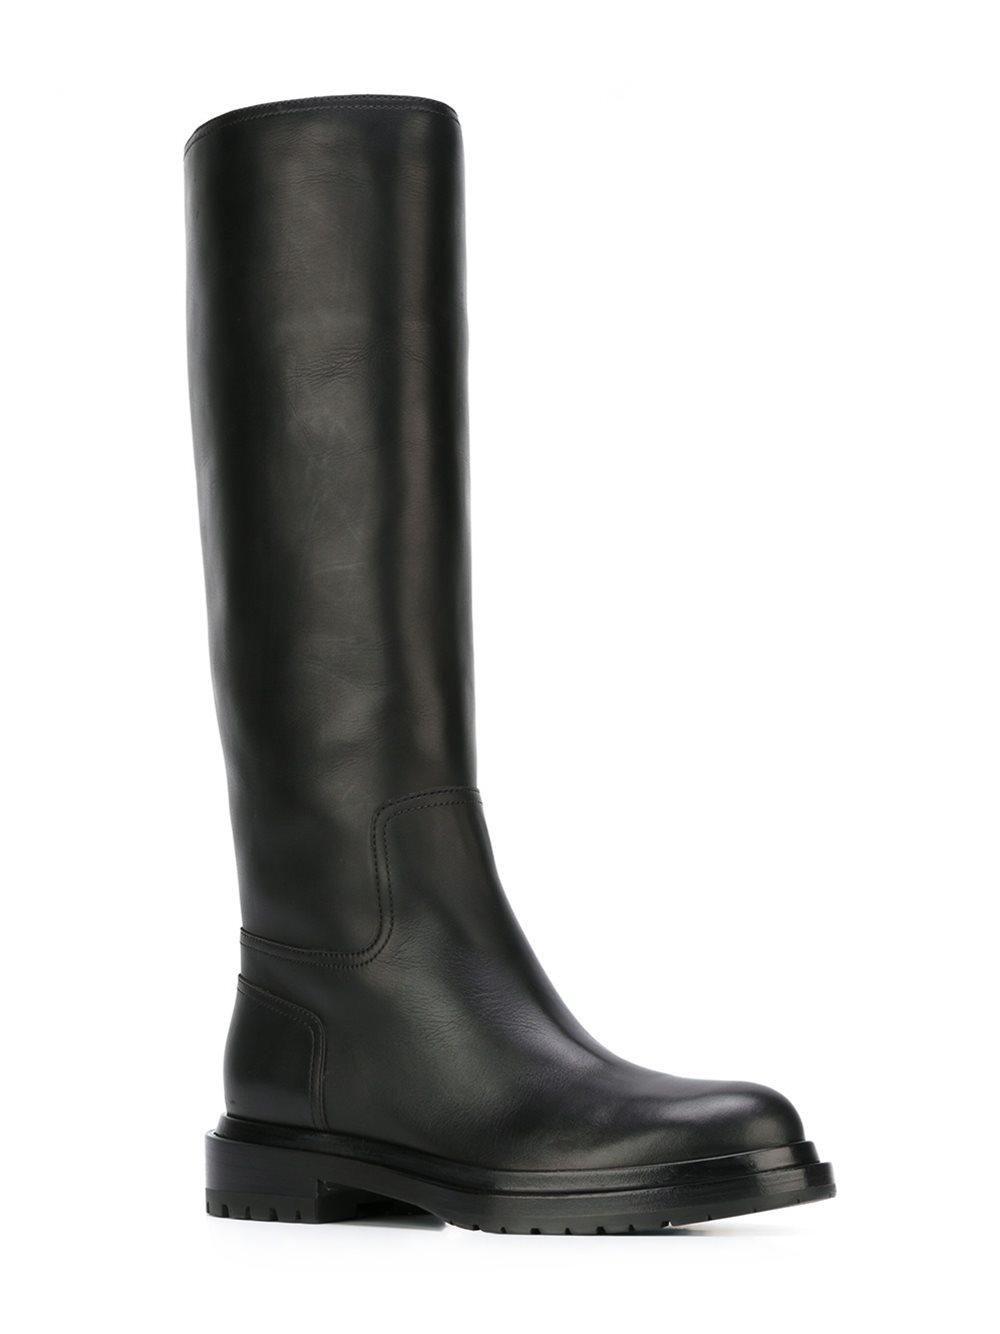 Sergio Rossi Chunky low heel boots z1rPyj2Pv